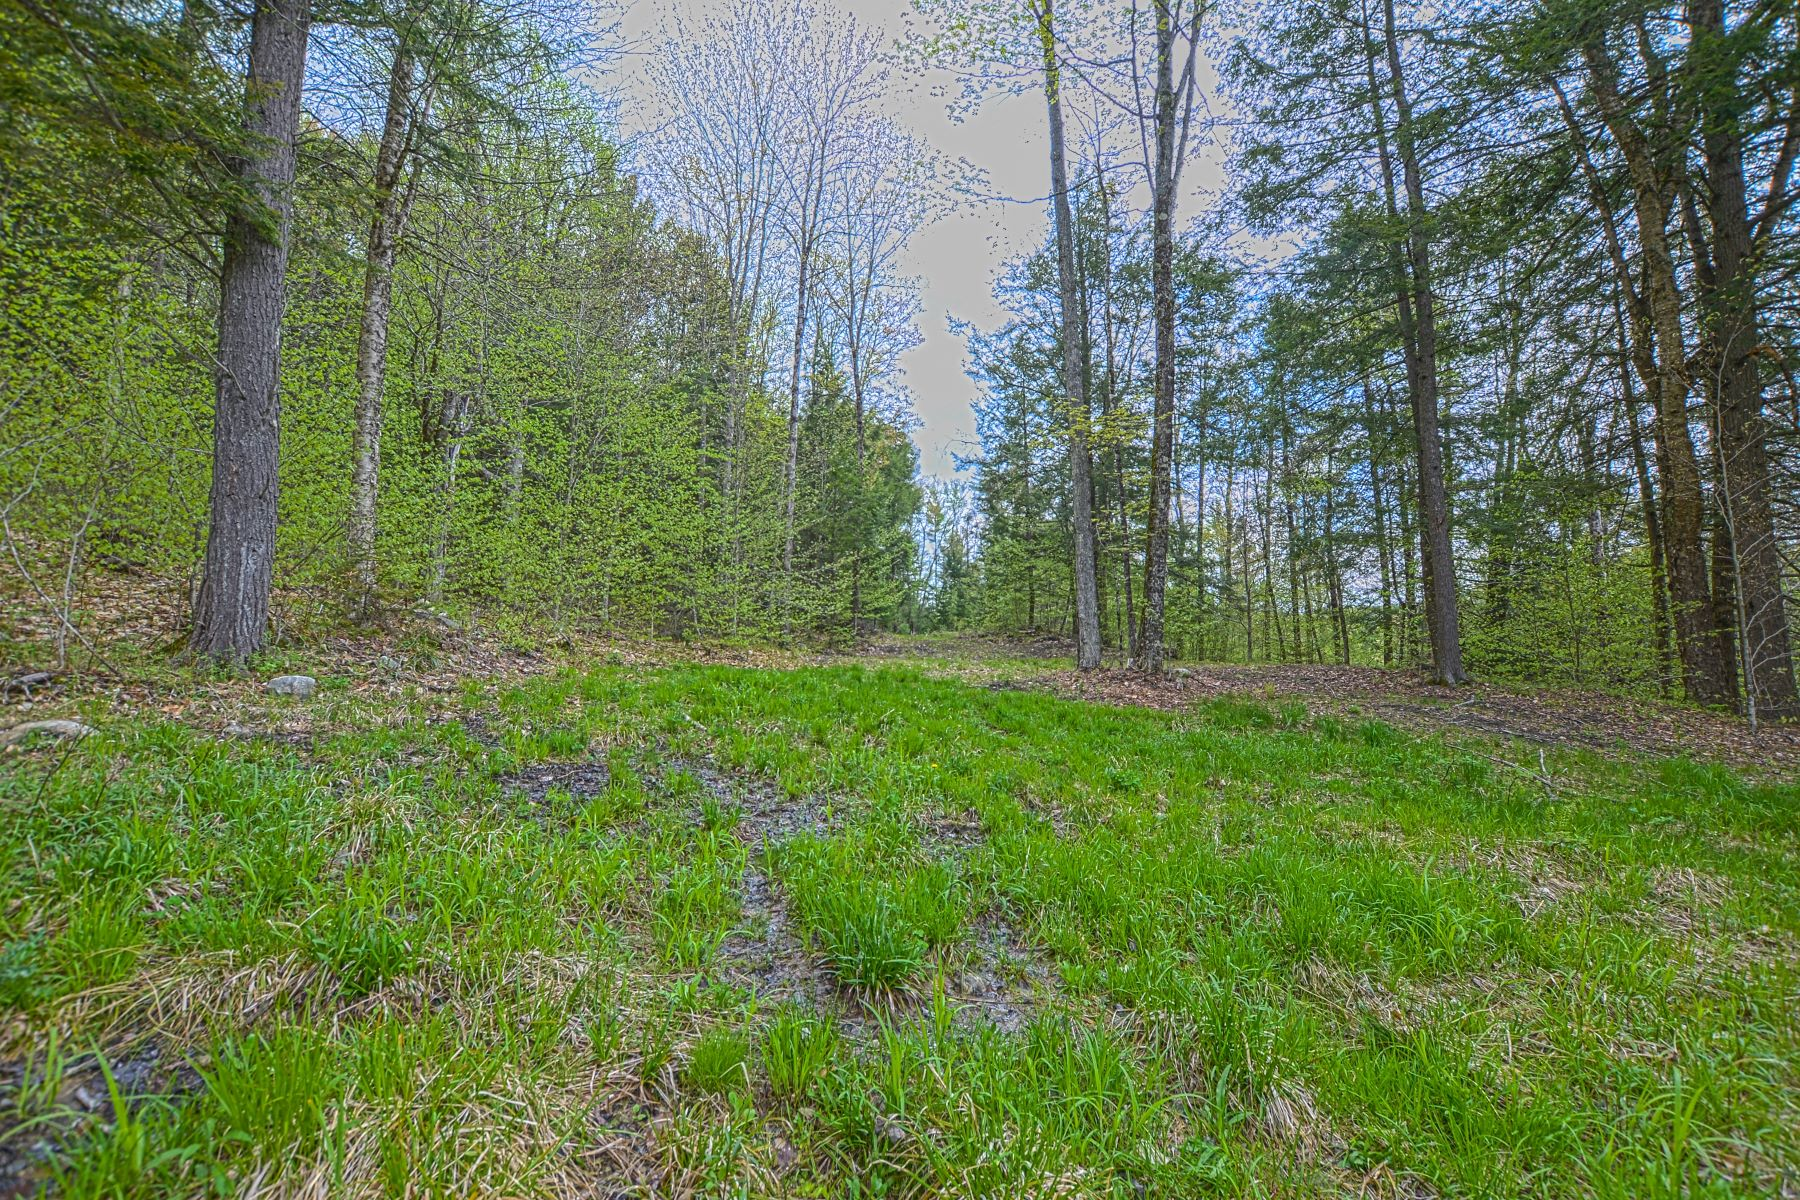 Land for Sale at 13 Acres in Newbury with Camp 341 Darling Rd Newbury, Vermont 05051 United States